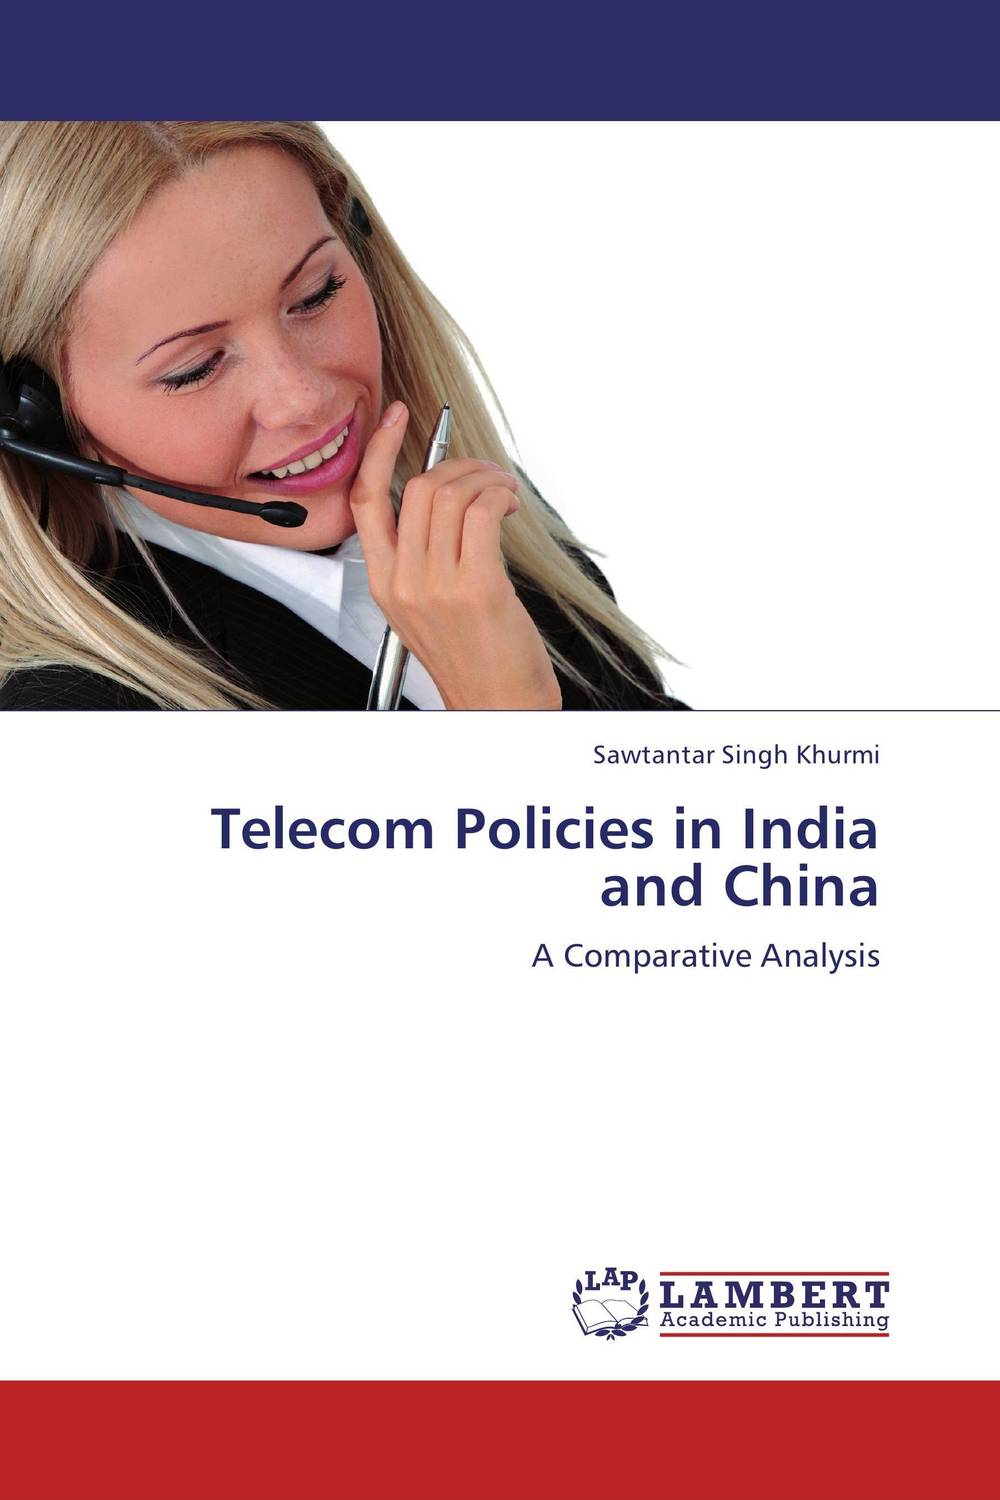 Telecom Policies in India and China deepita chakravarty expansion of markets and women workers in india